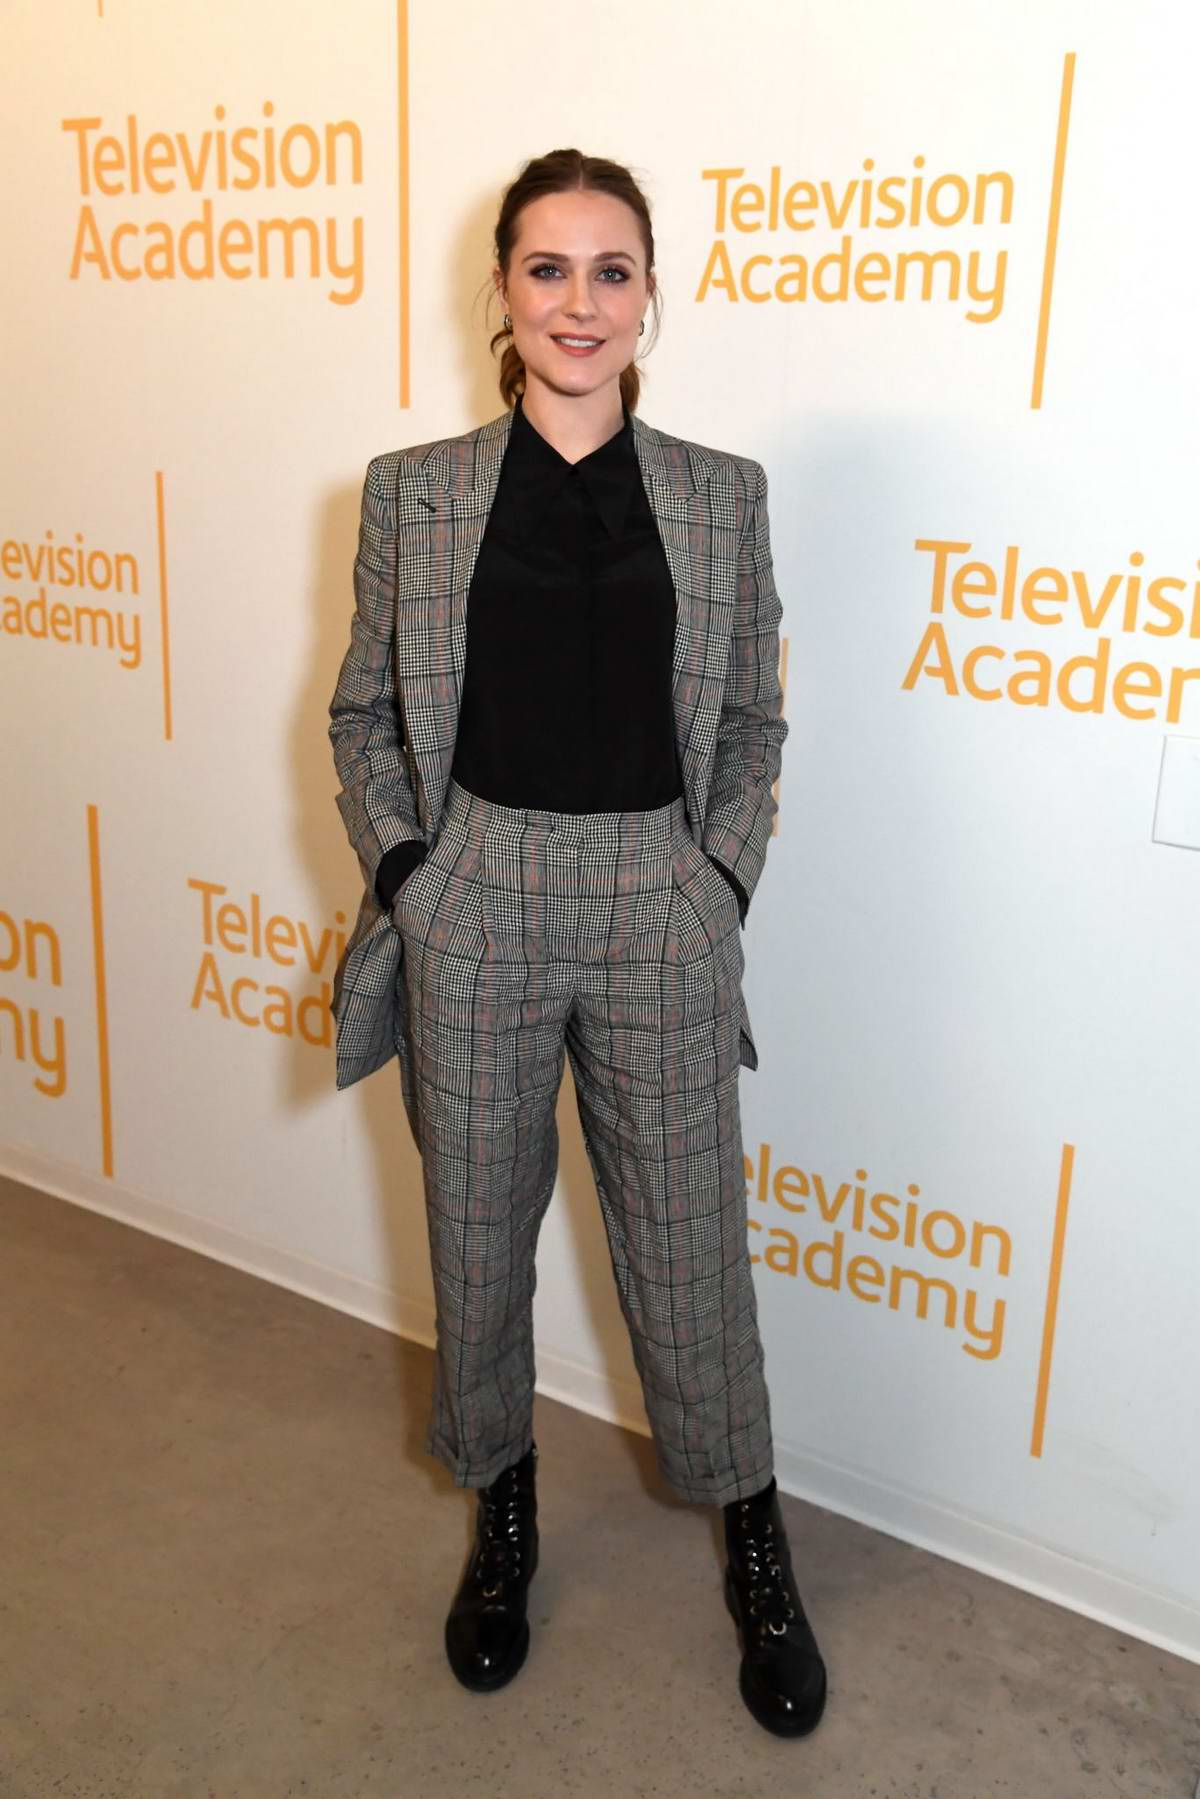 Evan Rachel Wood attends a screening and panel discussion of HBO series 'Westworld' in North Hollywood, California